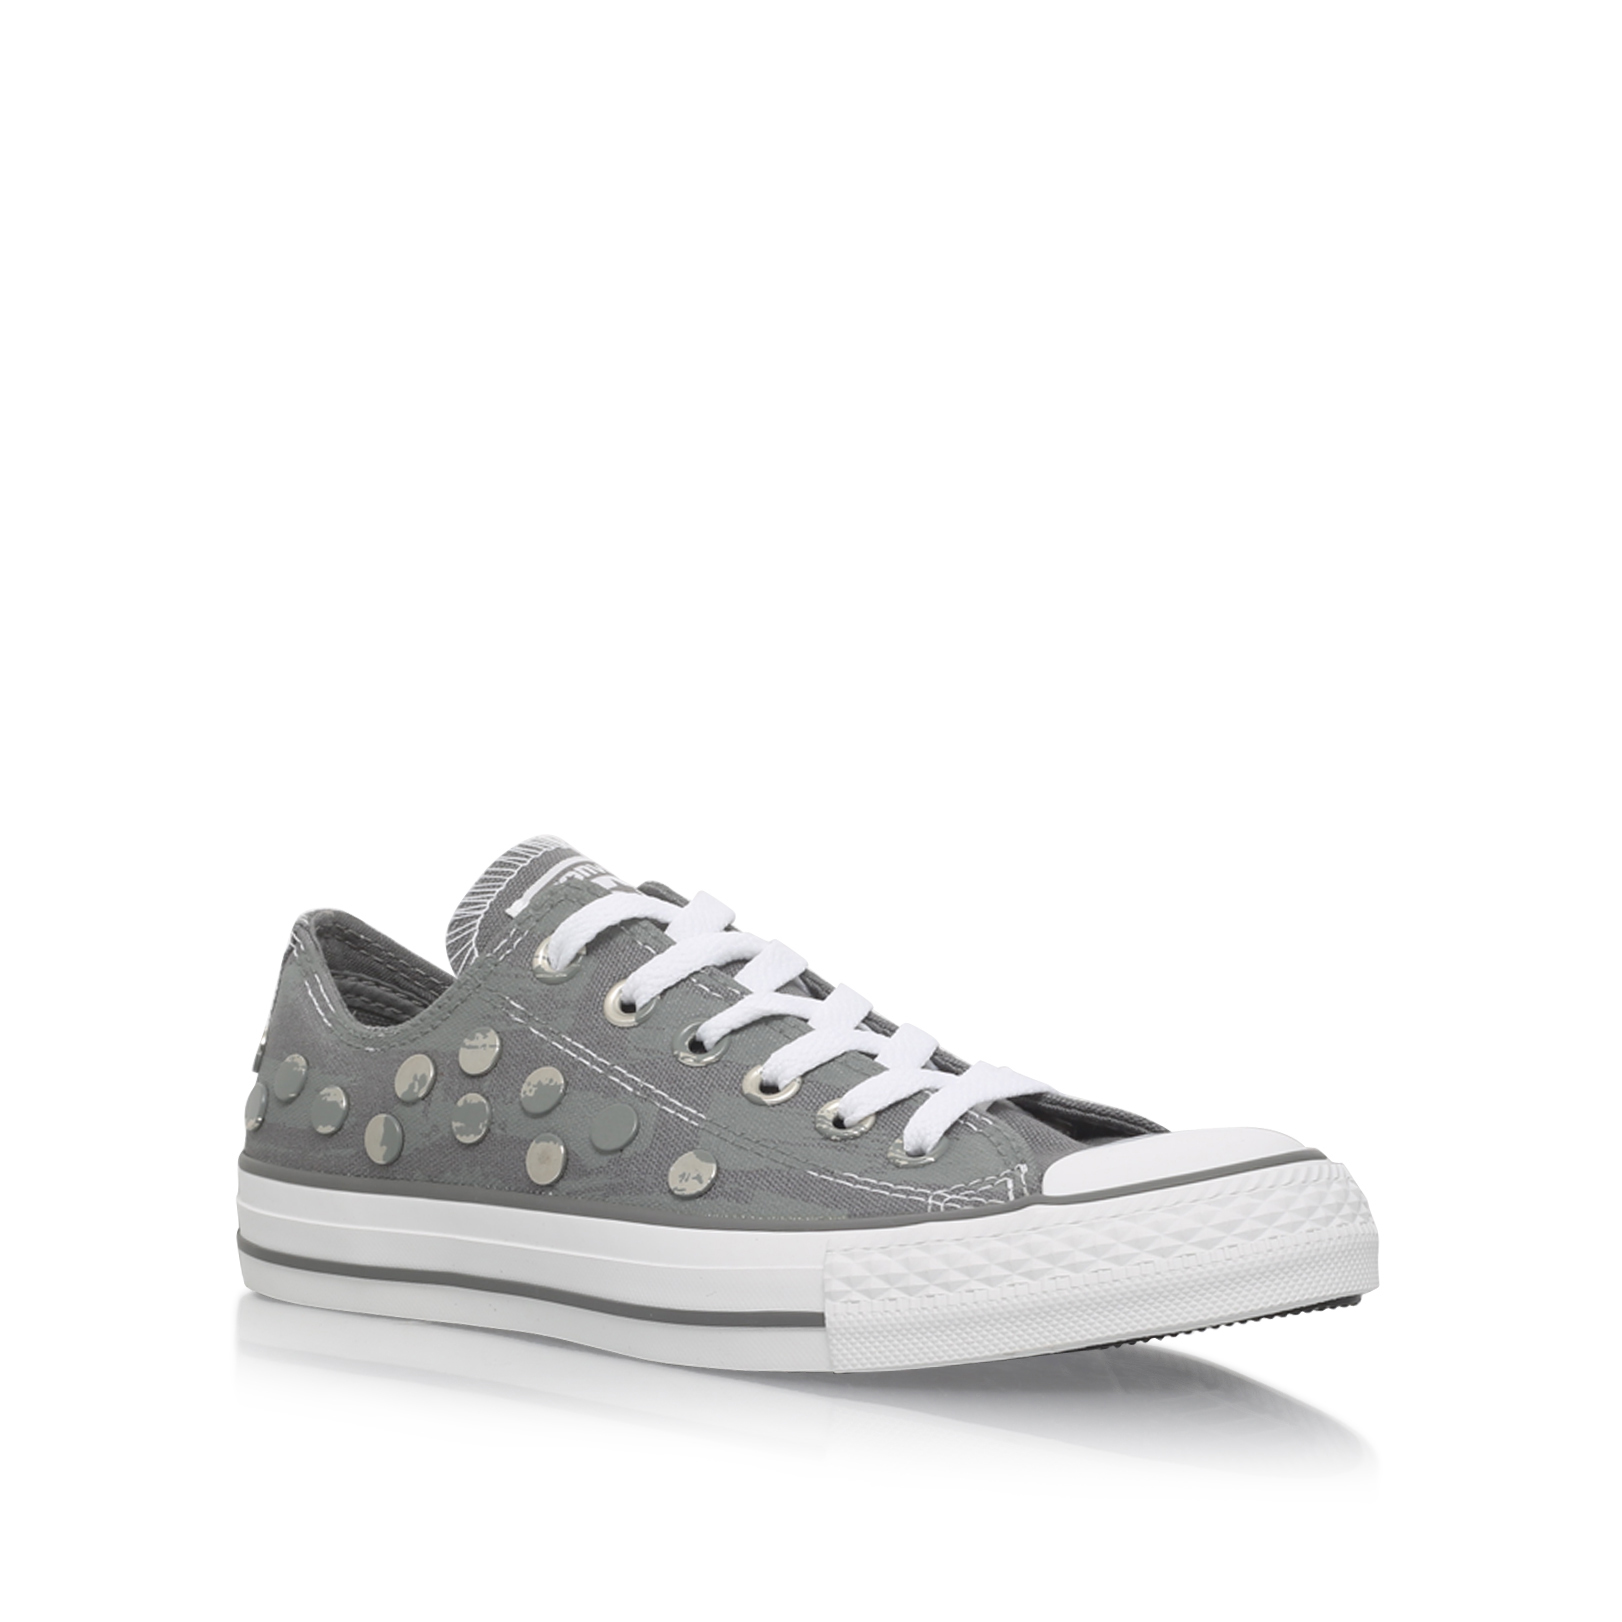 CONVERSE TRAINER LOW TOP